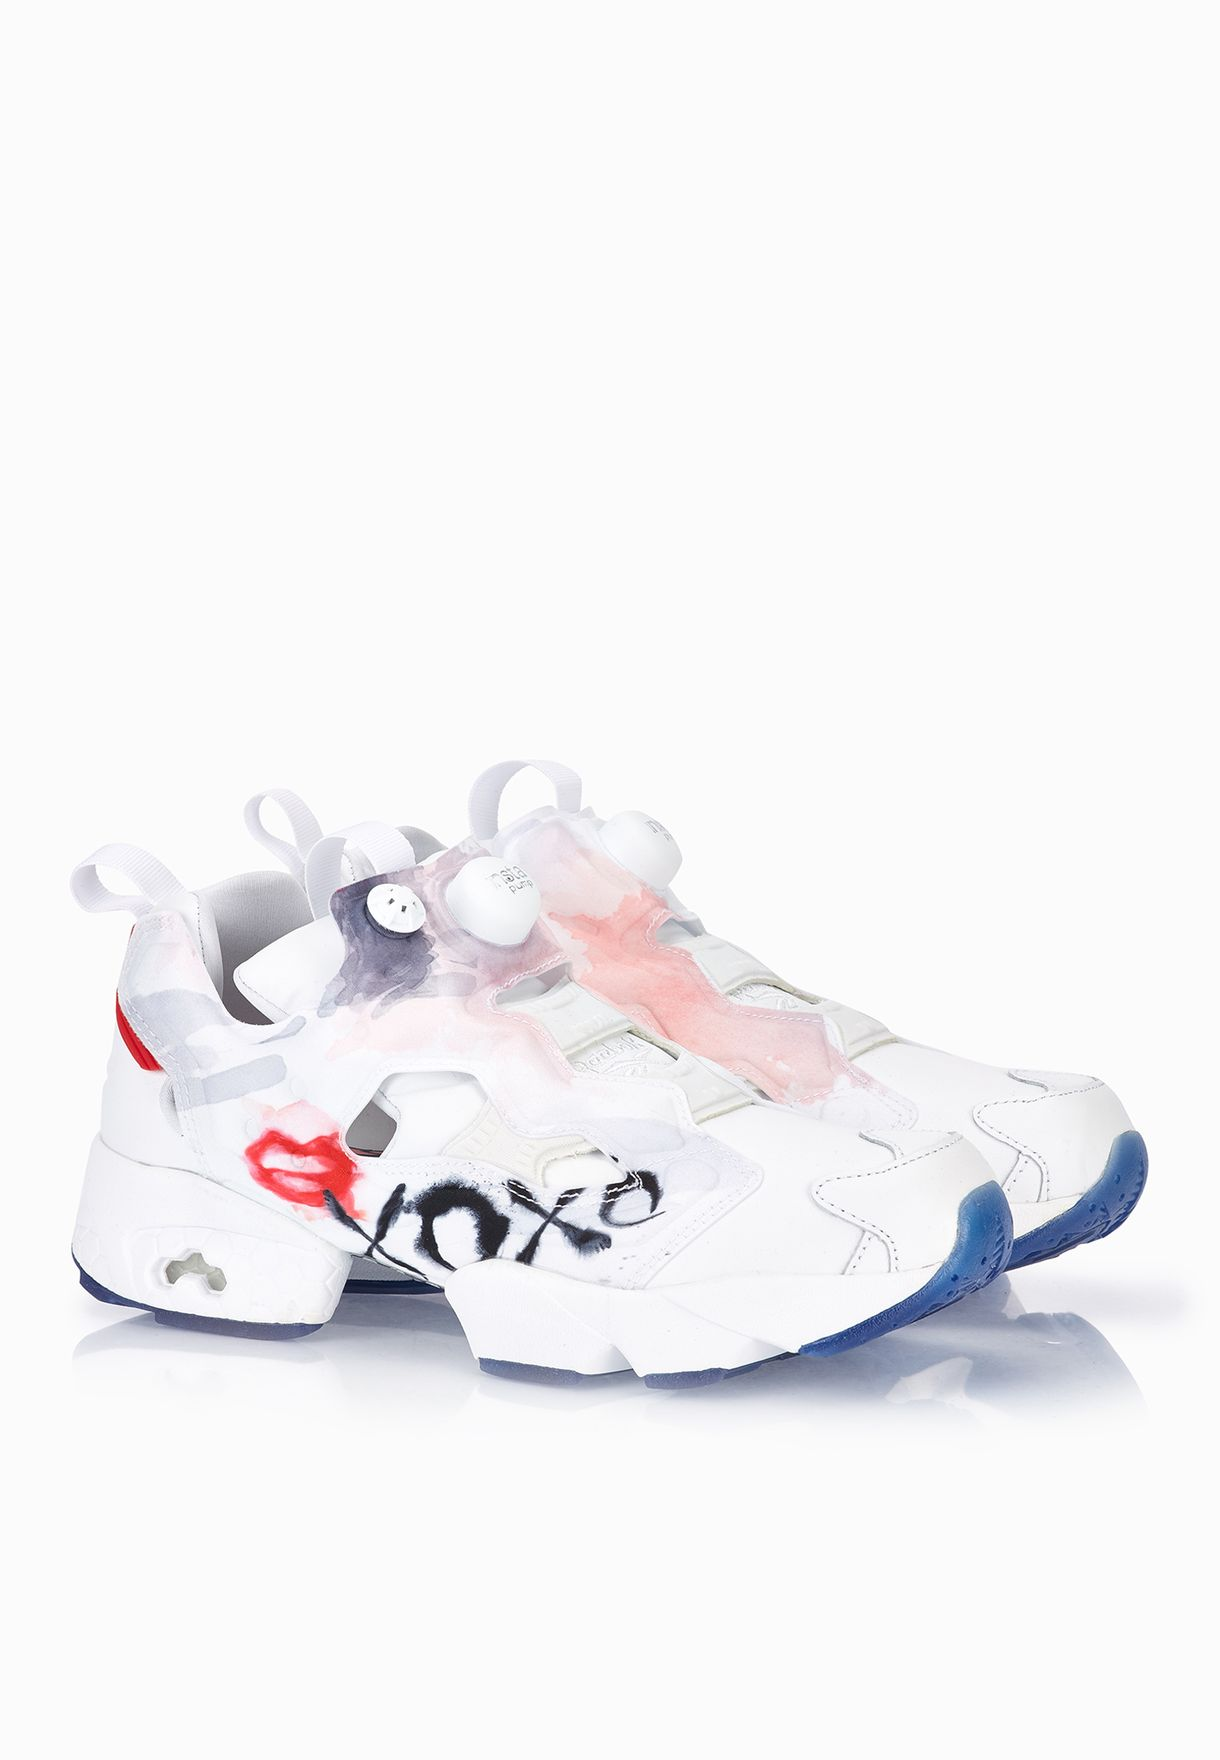 0e8827cb Shop Reebok prints Instapump Fury Celebrate V69142 for Women in UAE ...